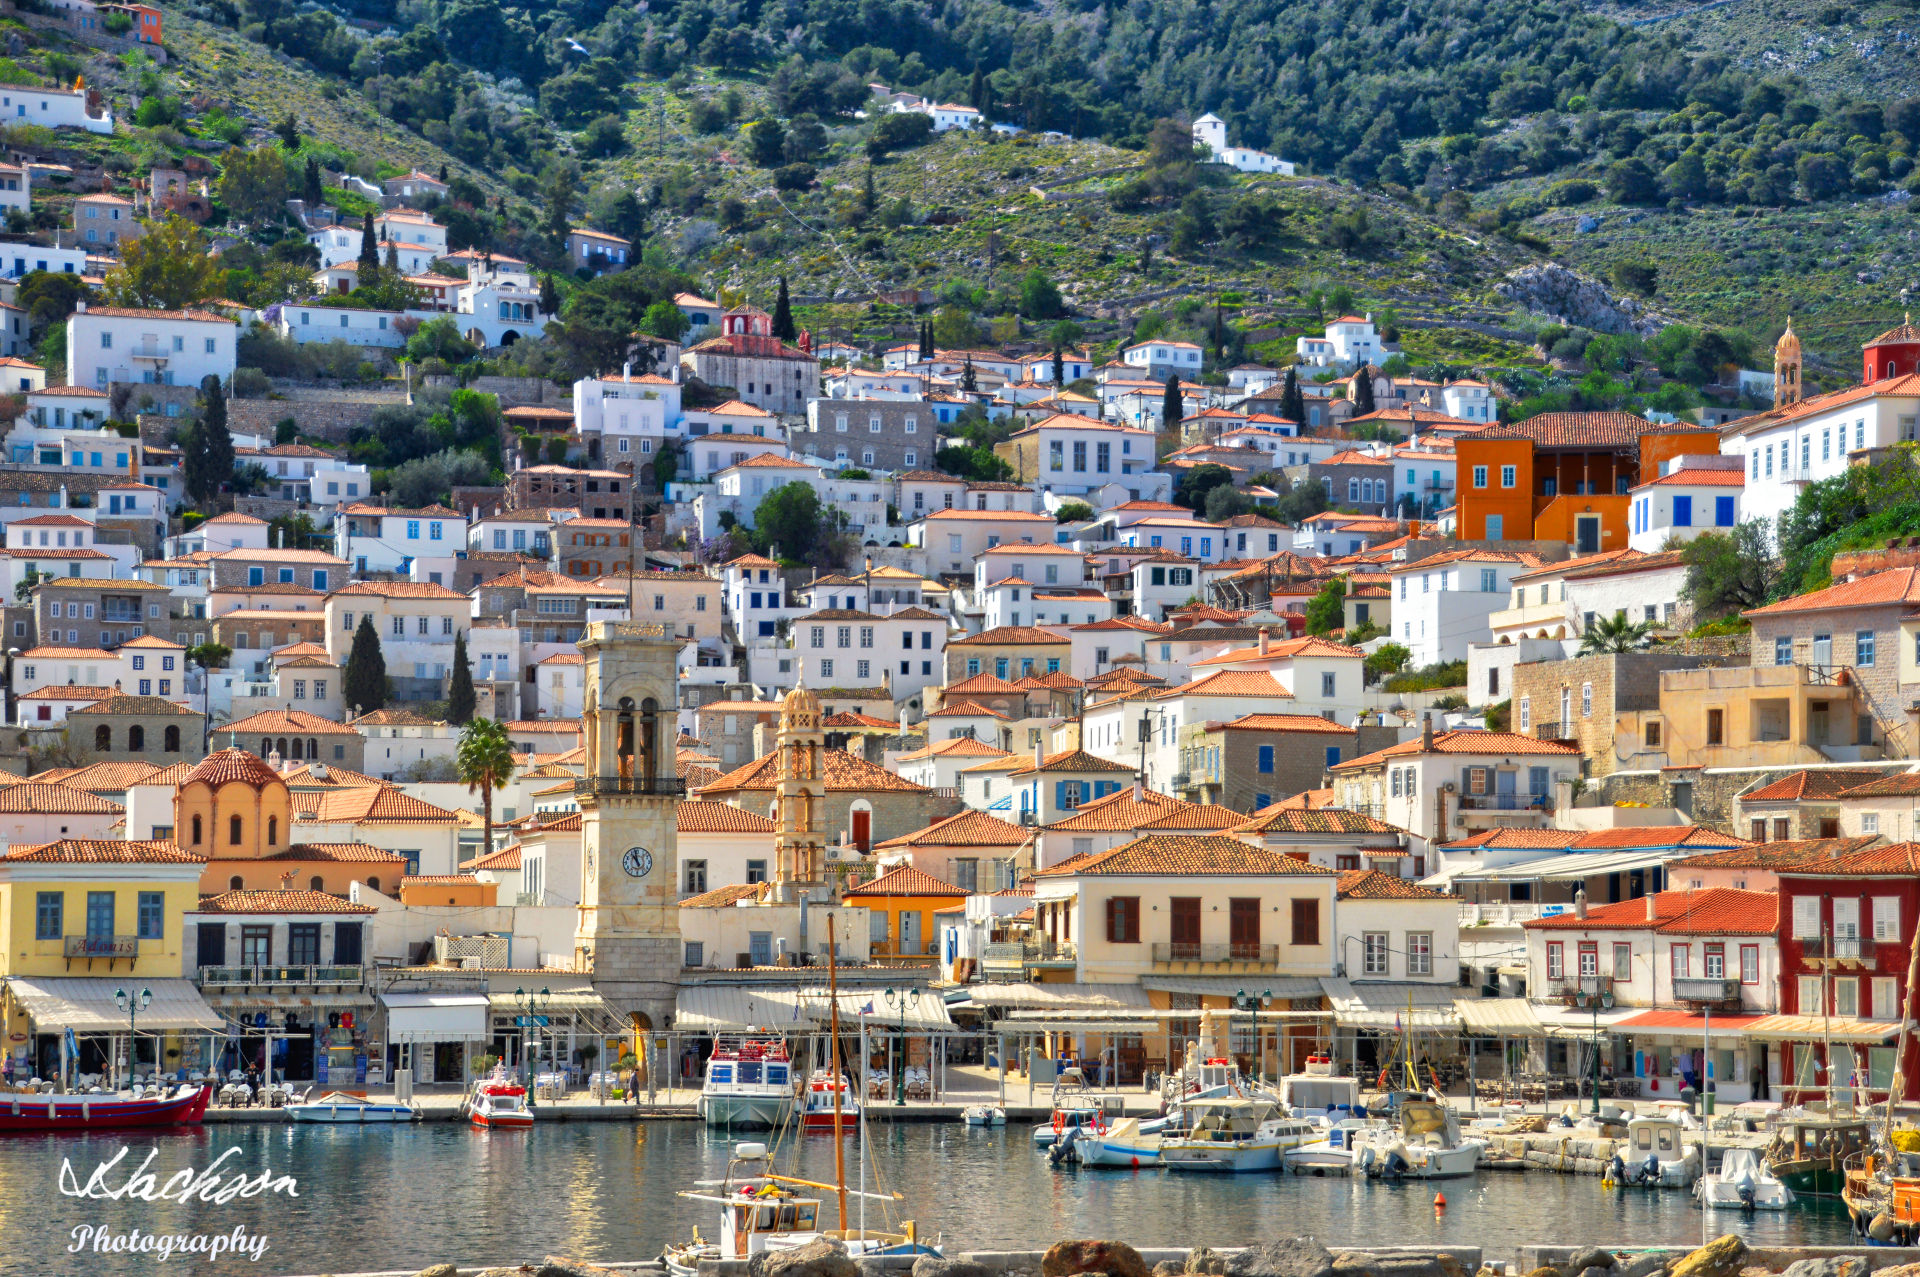 Photo of the view of the Greek Island of Hydra